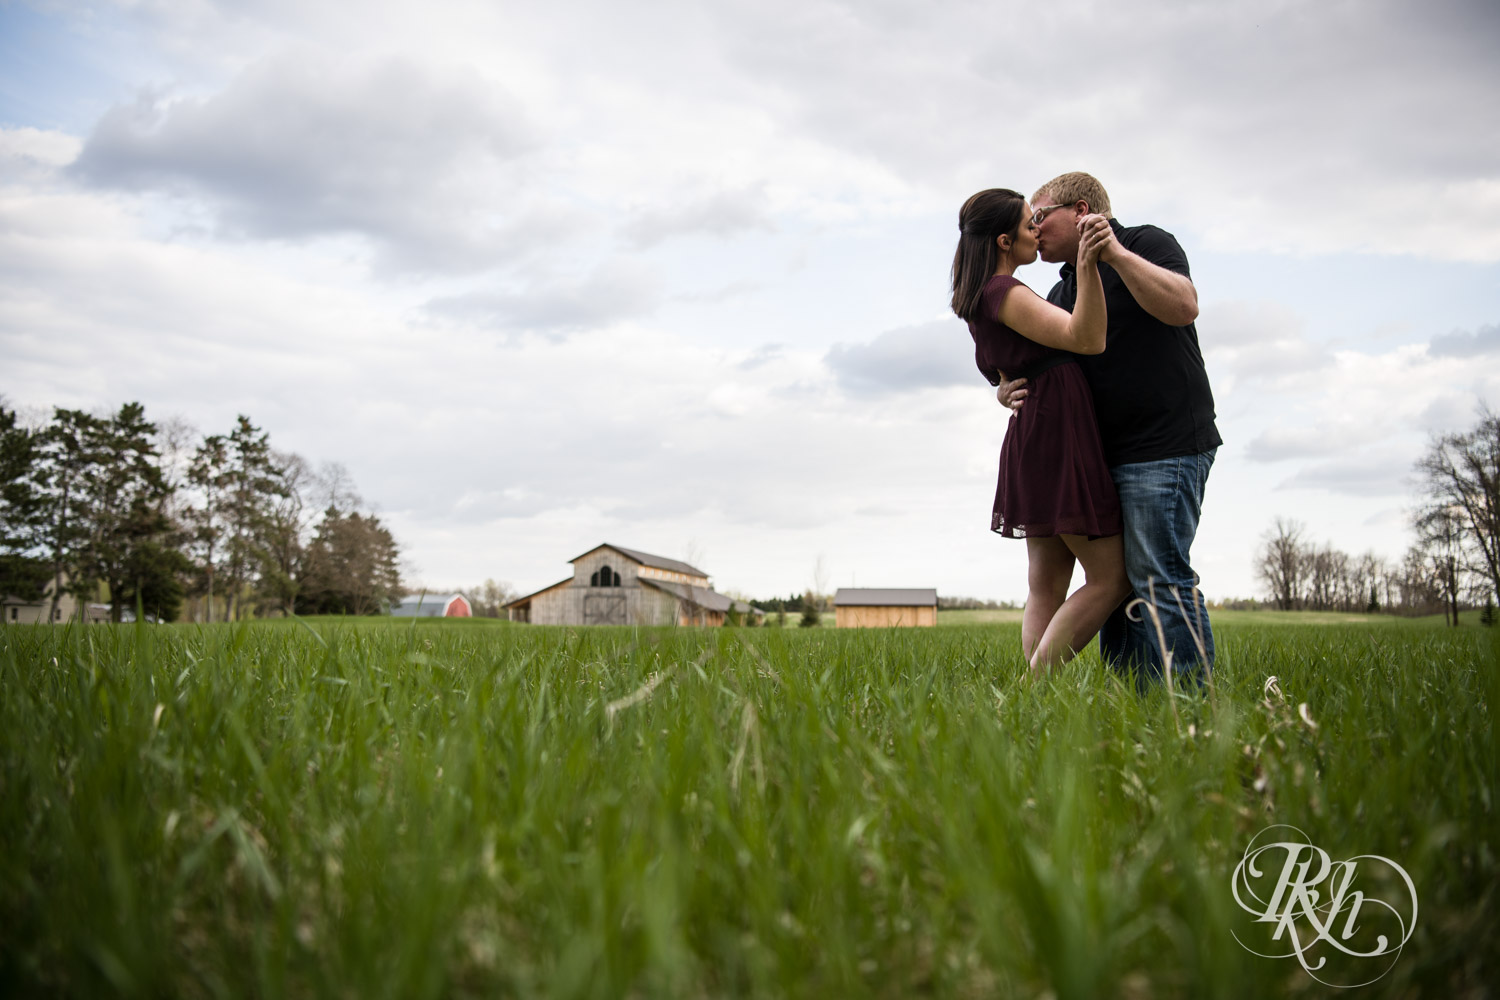 Chelsey & Erik - Minnesota Engagement Photography - Creekside Farm and Events - Rush City - RKH Images  (13 of 18).jpg